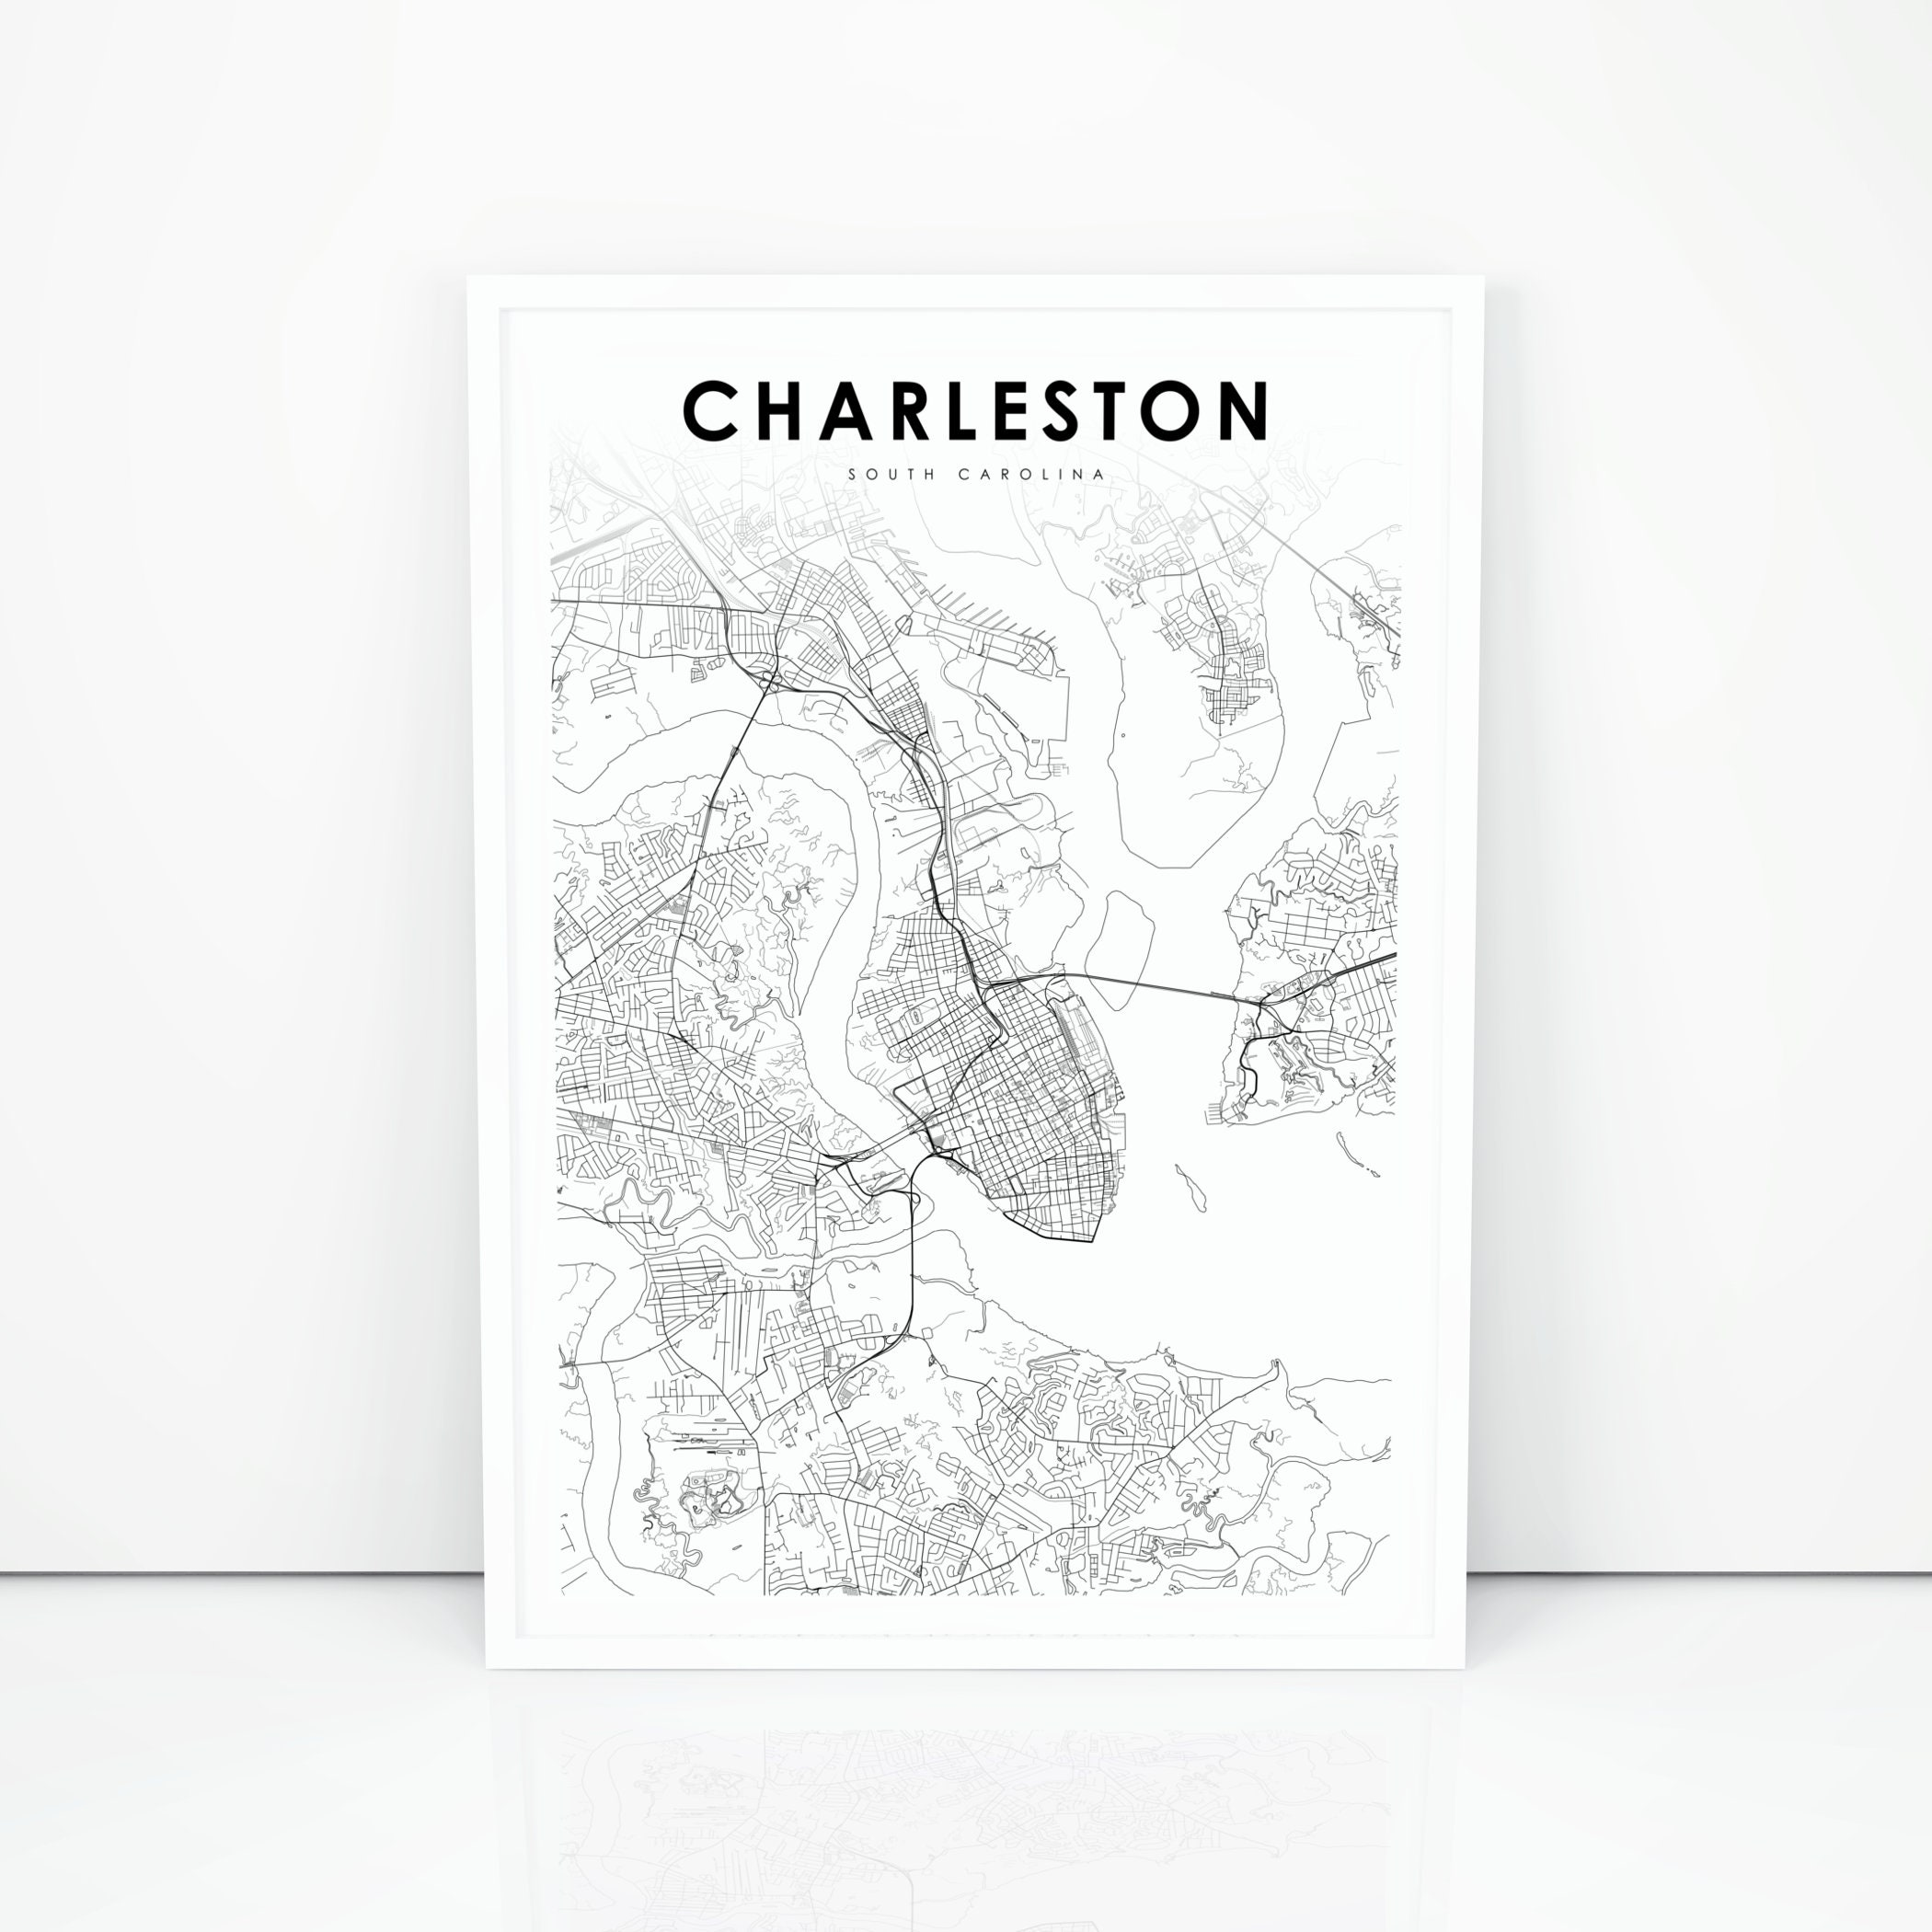 graphic relating to Printable Maps of South Carolina identify Charleston Map Print, South Carolina SC United states of america Map Artwork Poster, Town Highway Street Map Print, Nursery Place Wall Workplace Decor, Printable Map